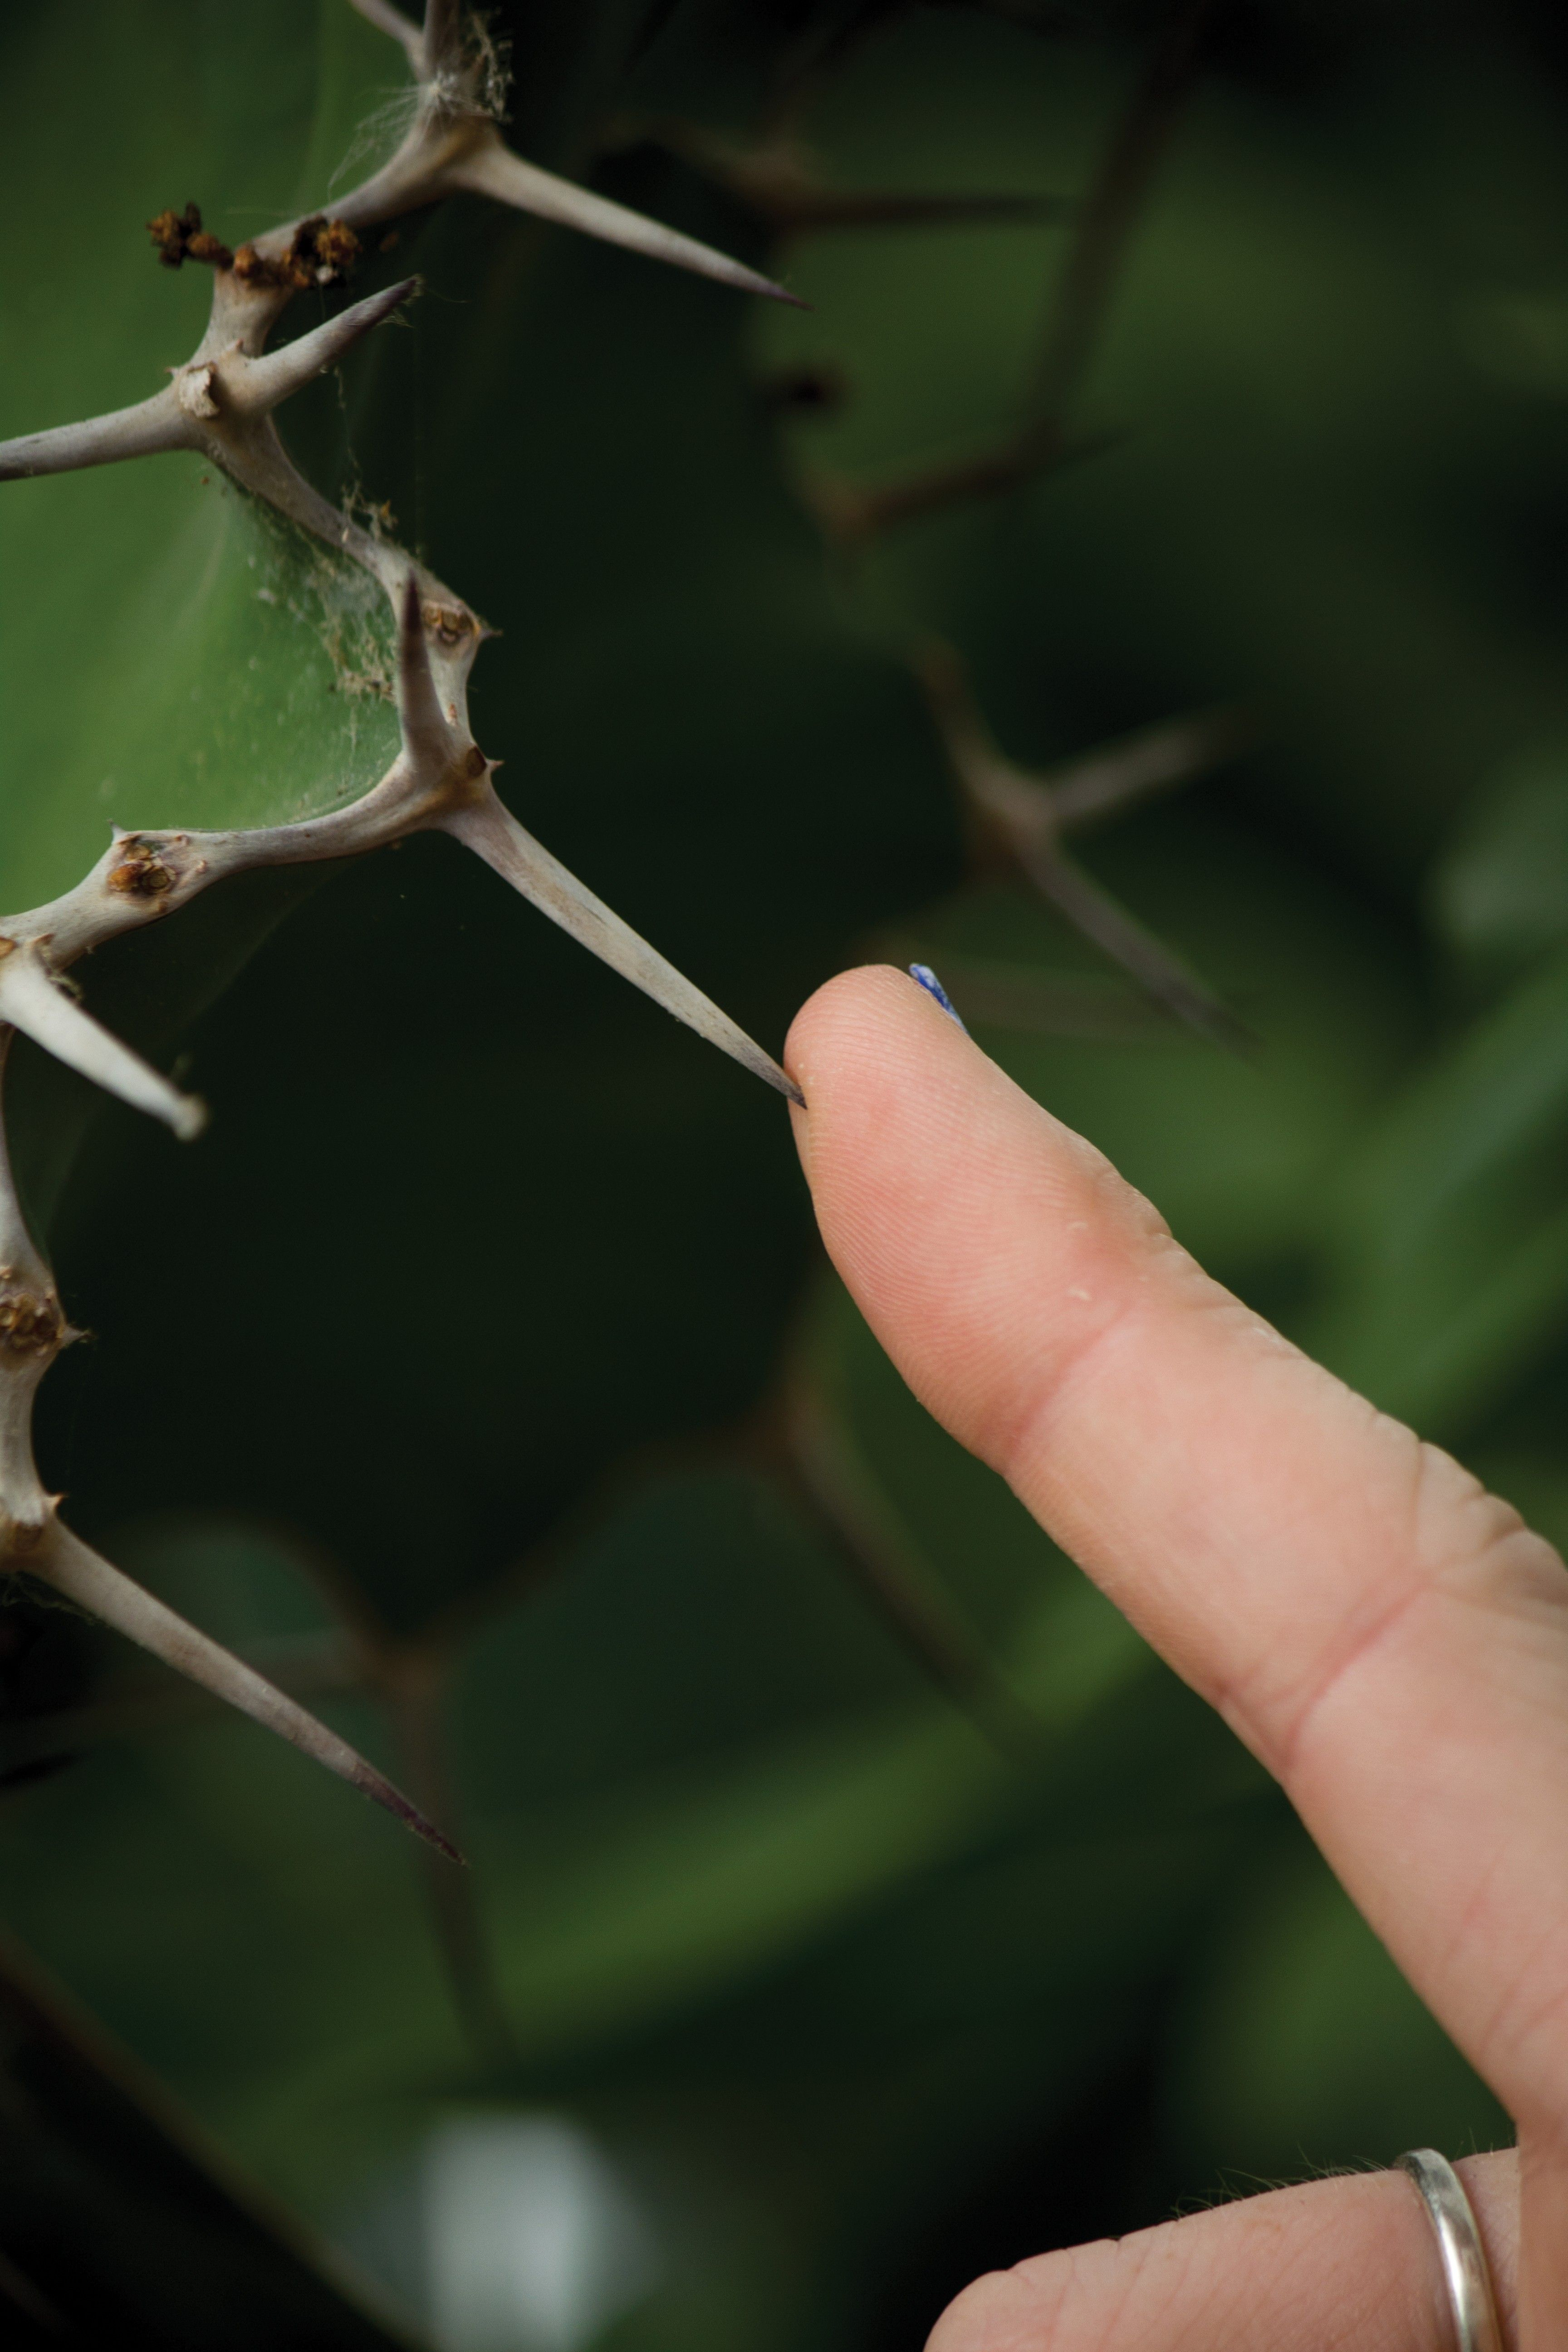 A finger touching a thorn on a plant.